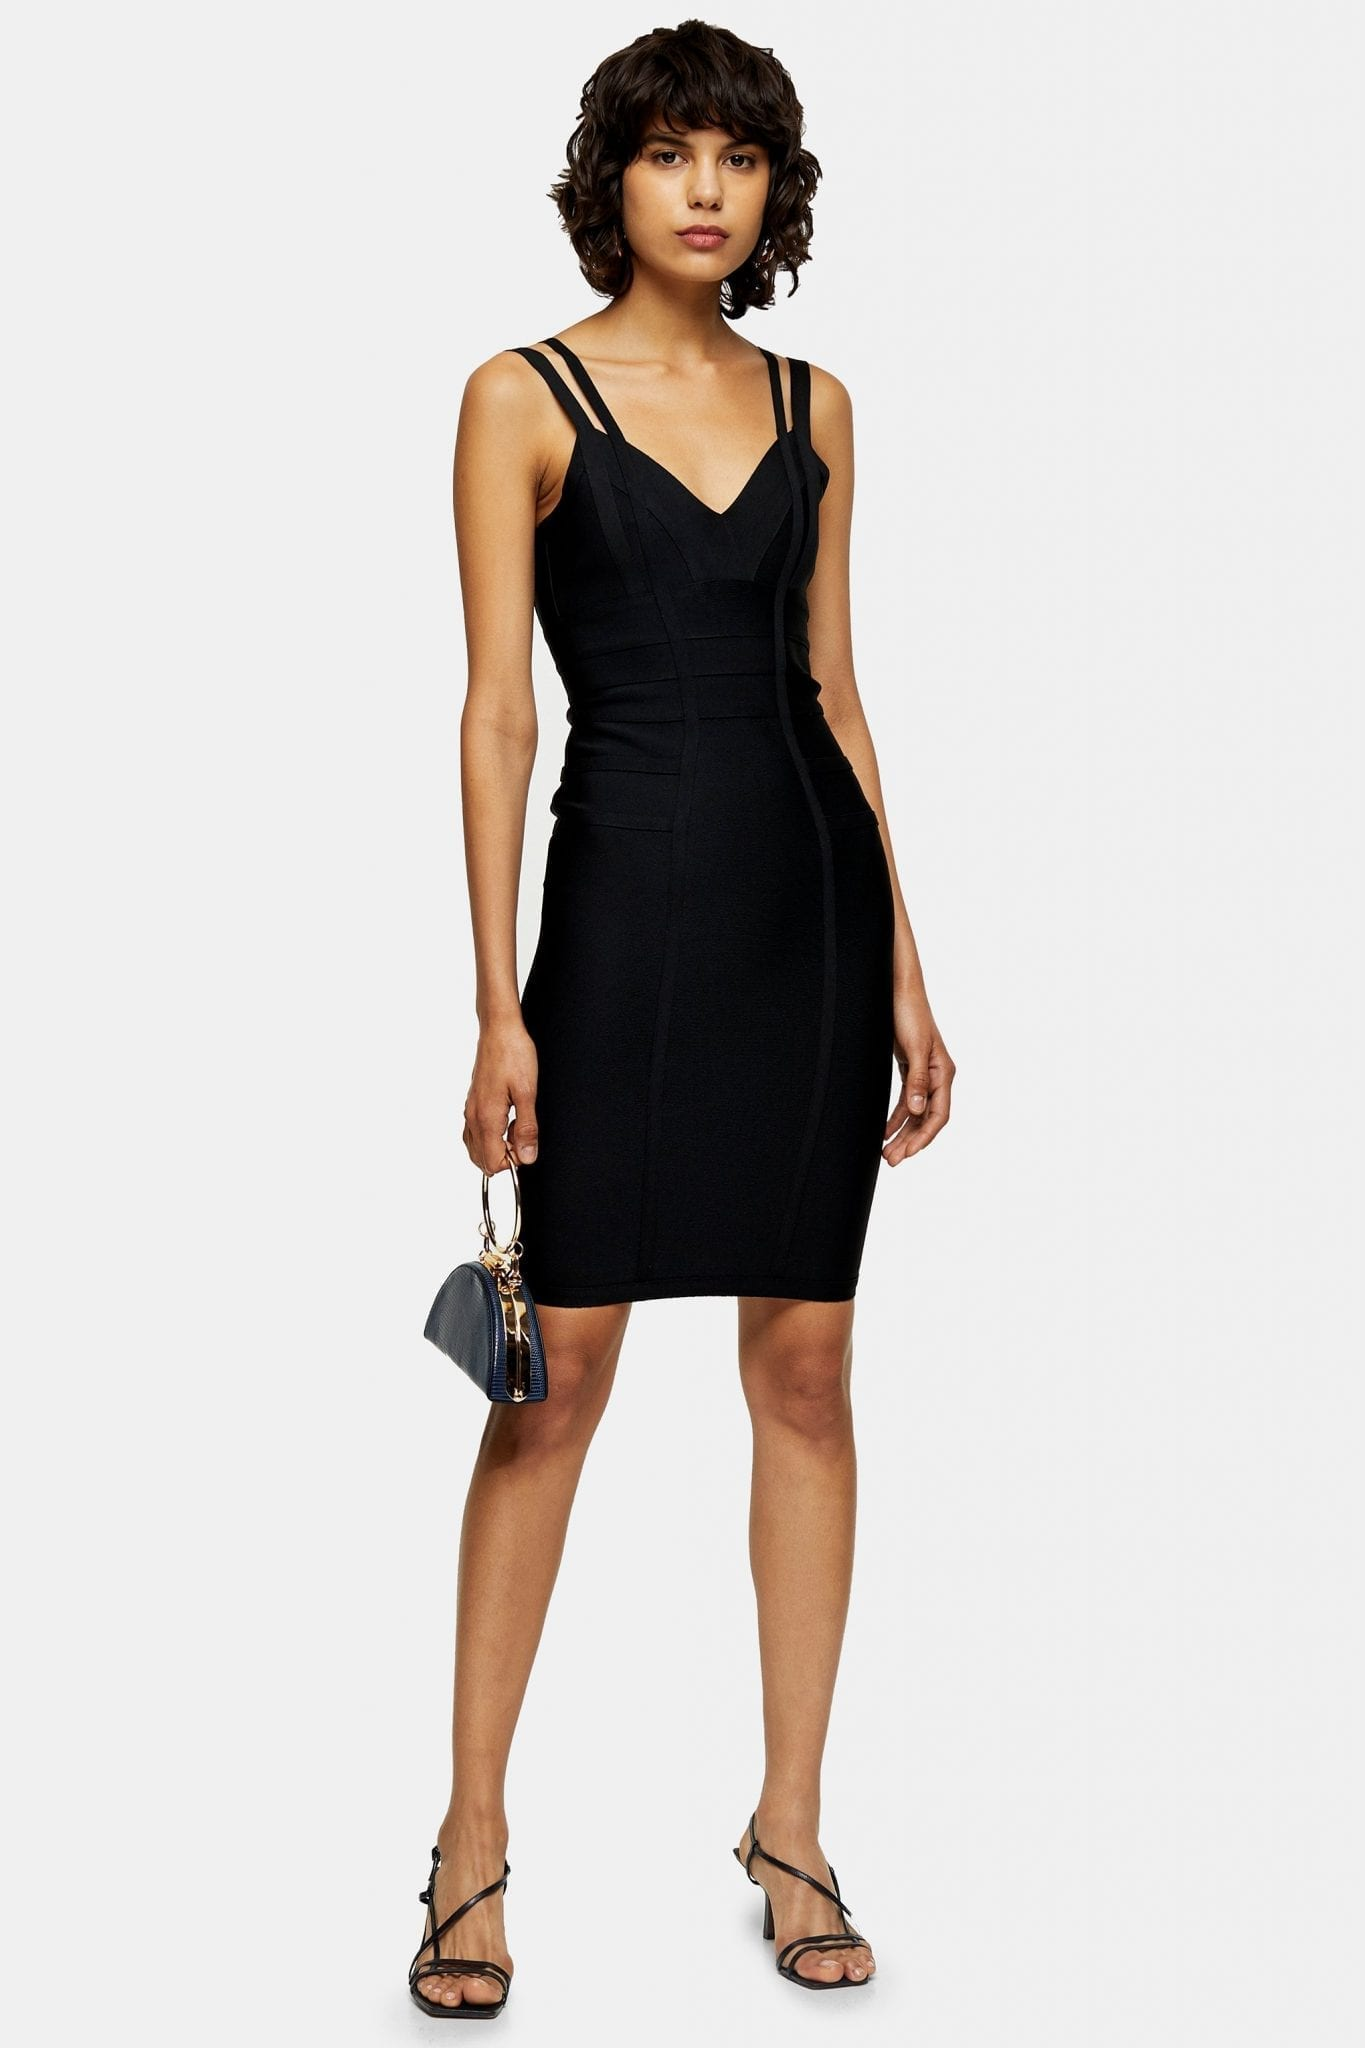 TOPSHOP Black Bandage Midi Dress